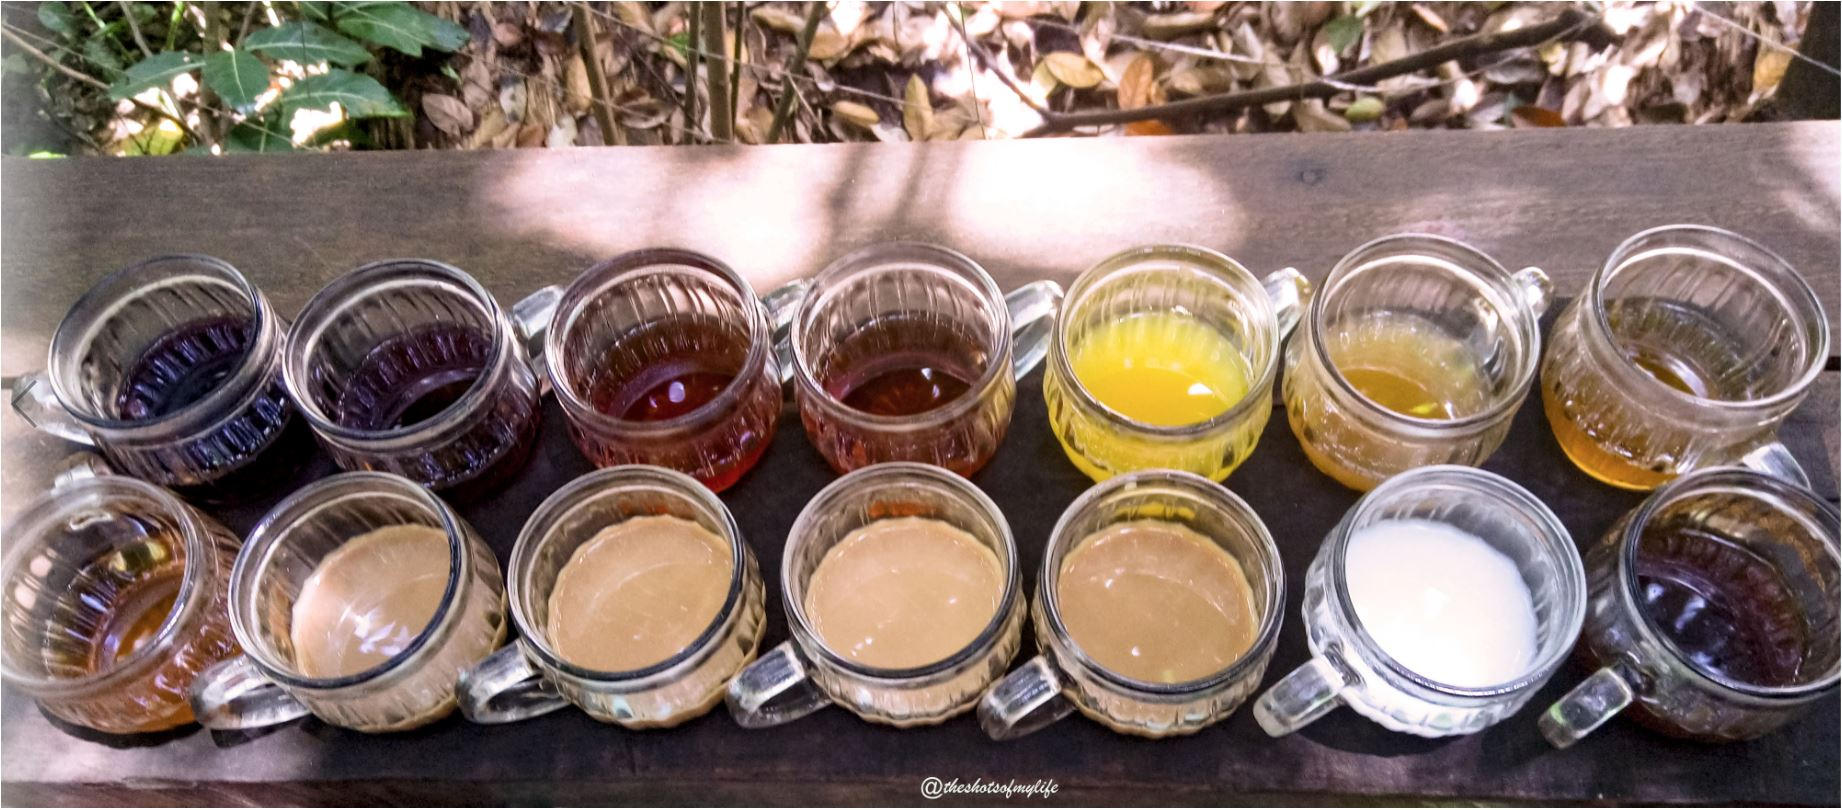 Varieties of coffee served at a plantation in Bali